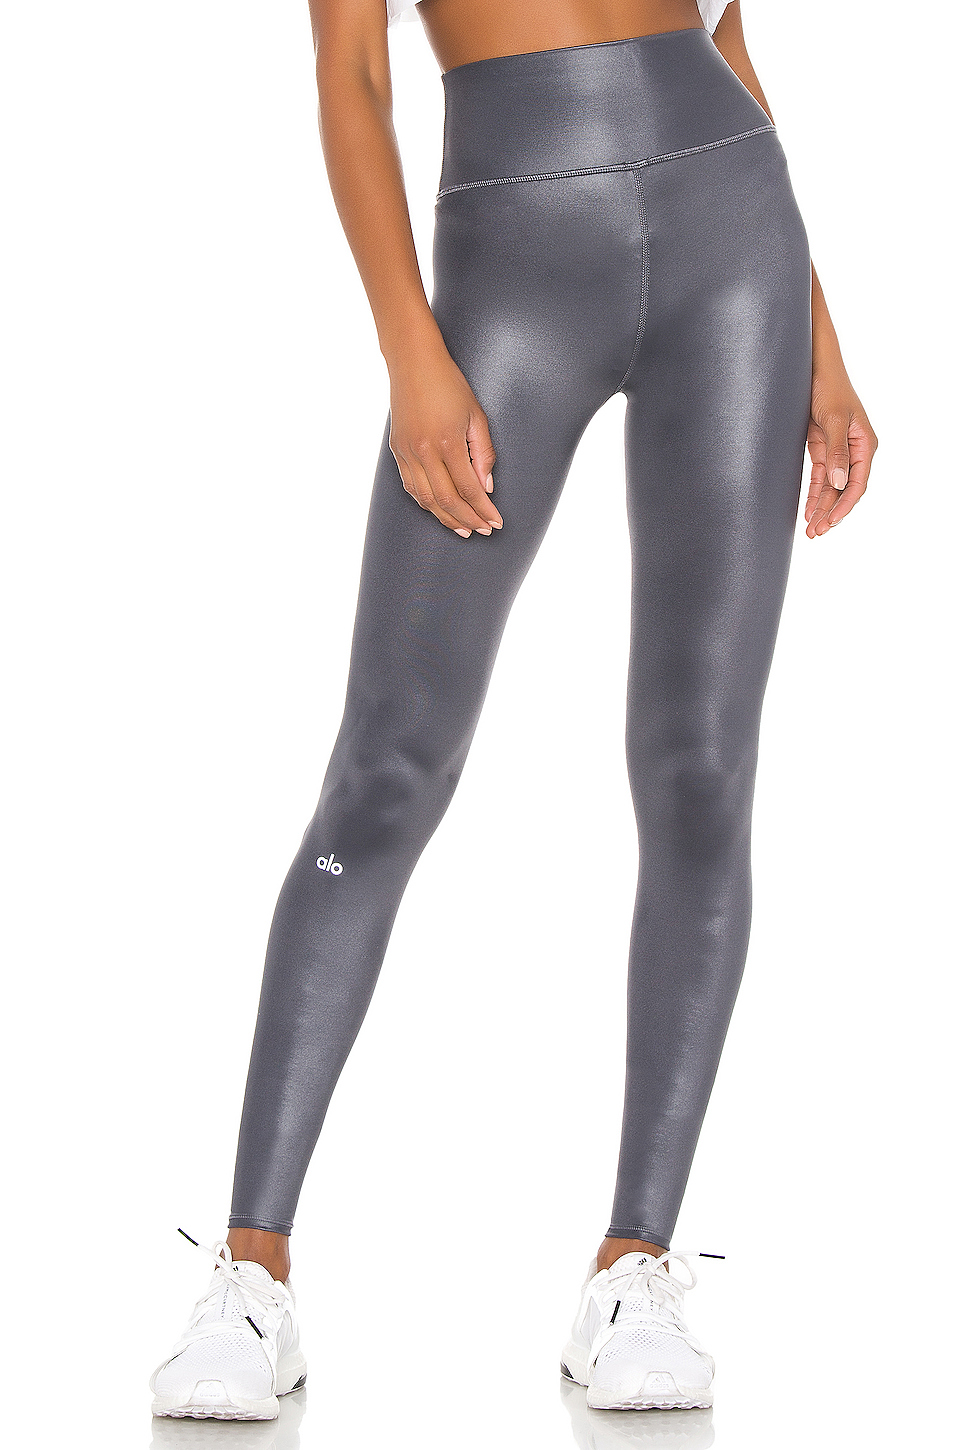 4f3d5edd147c3 Buy Original alo High Waist Shine Legging at Indonesia | BOBOBOBO